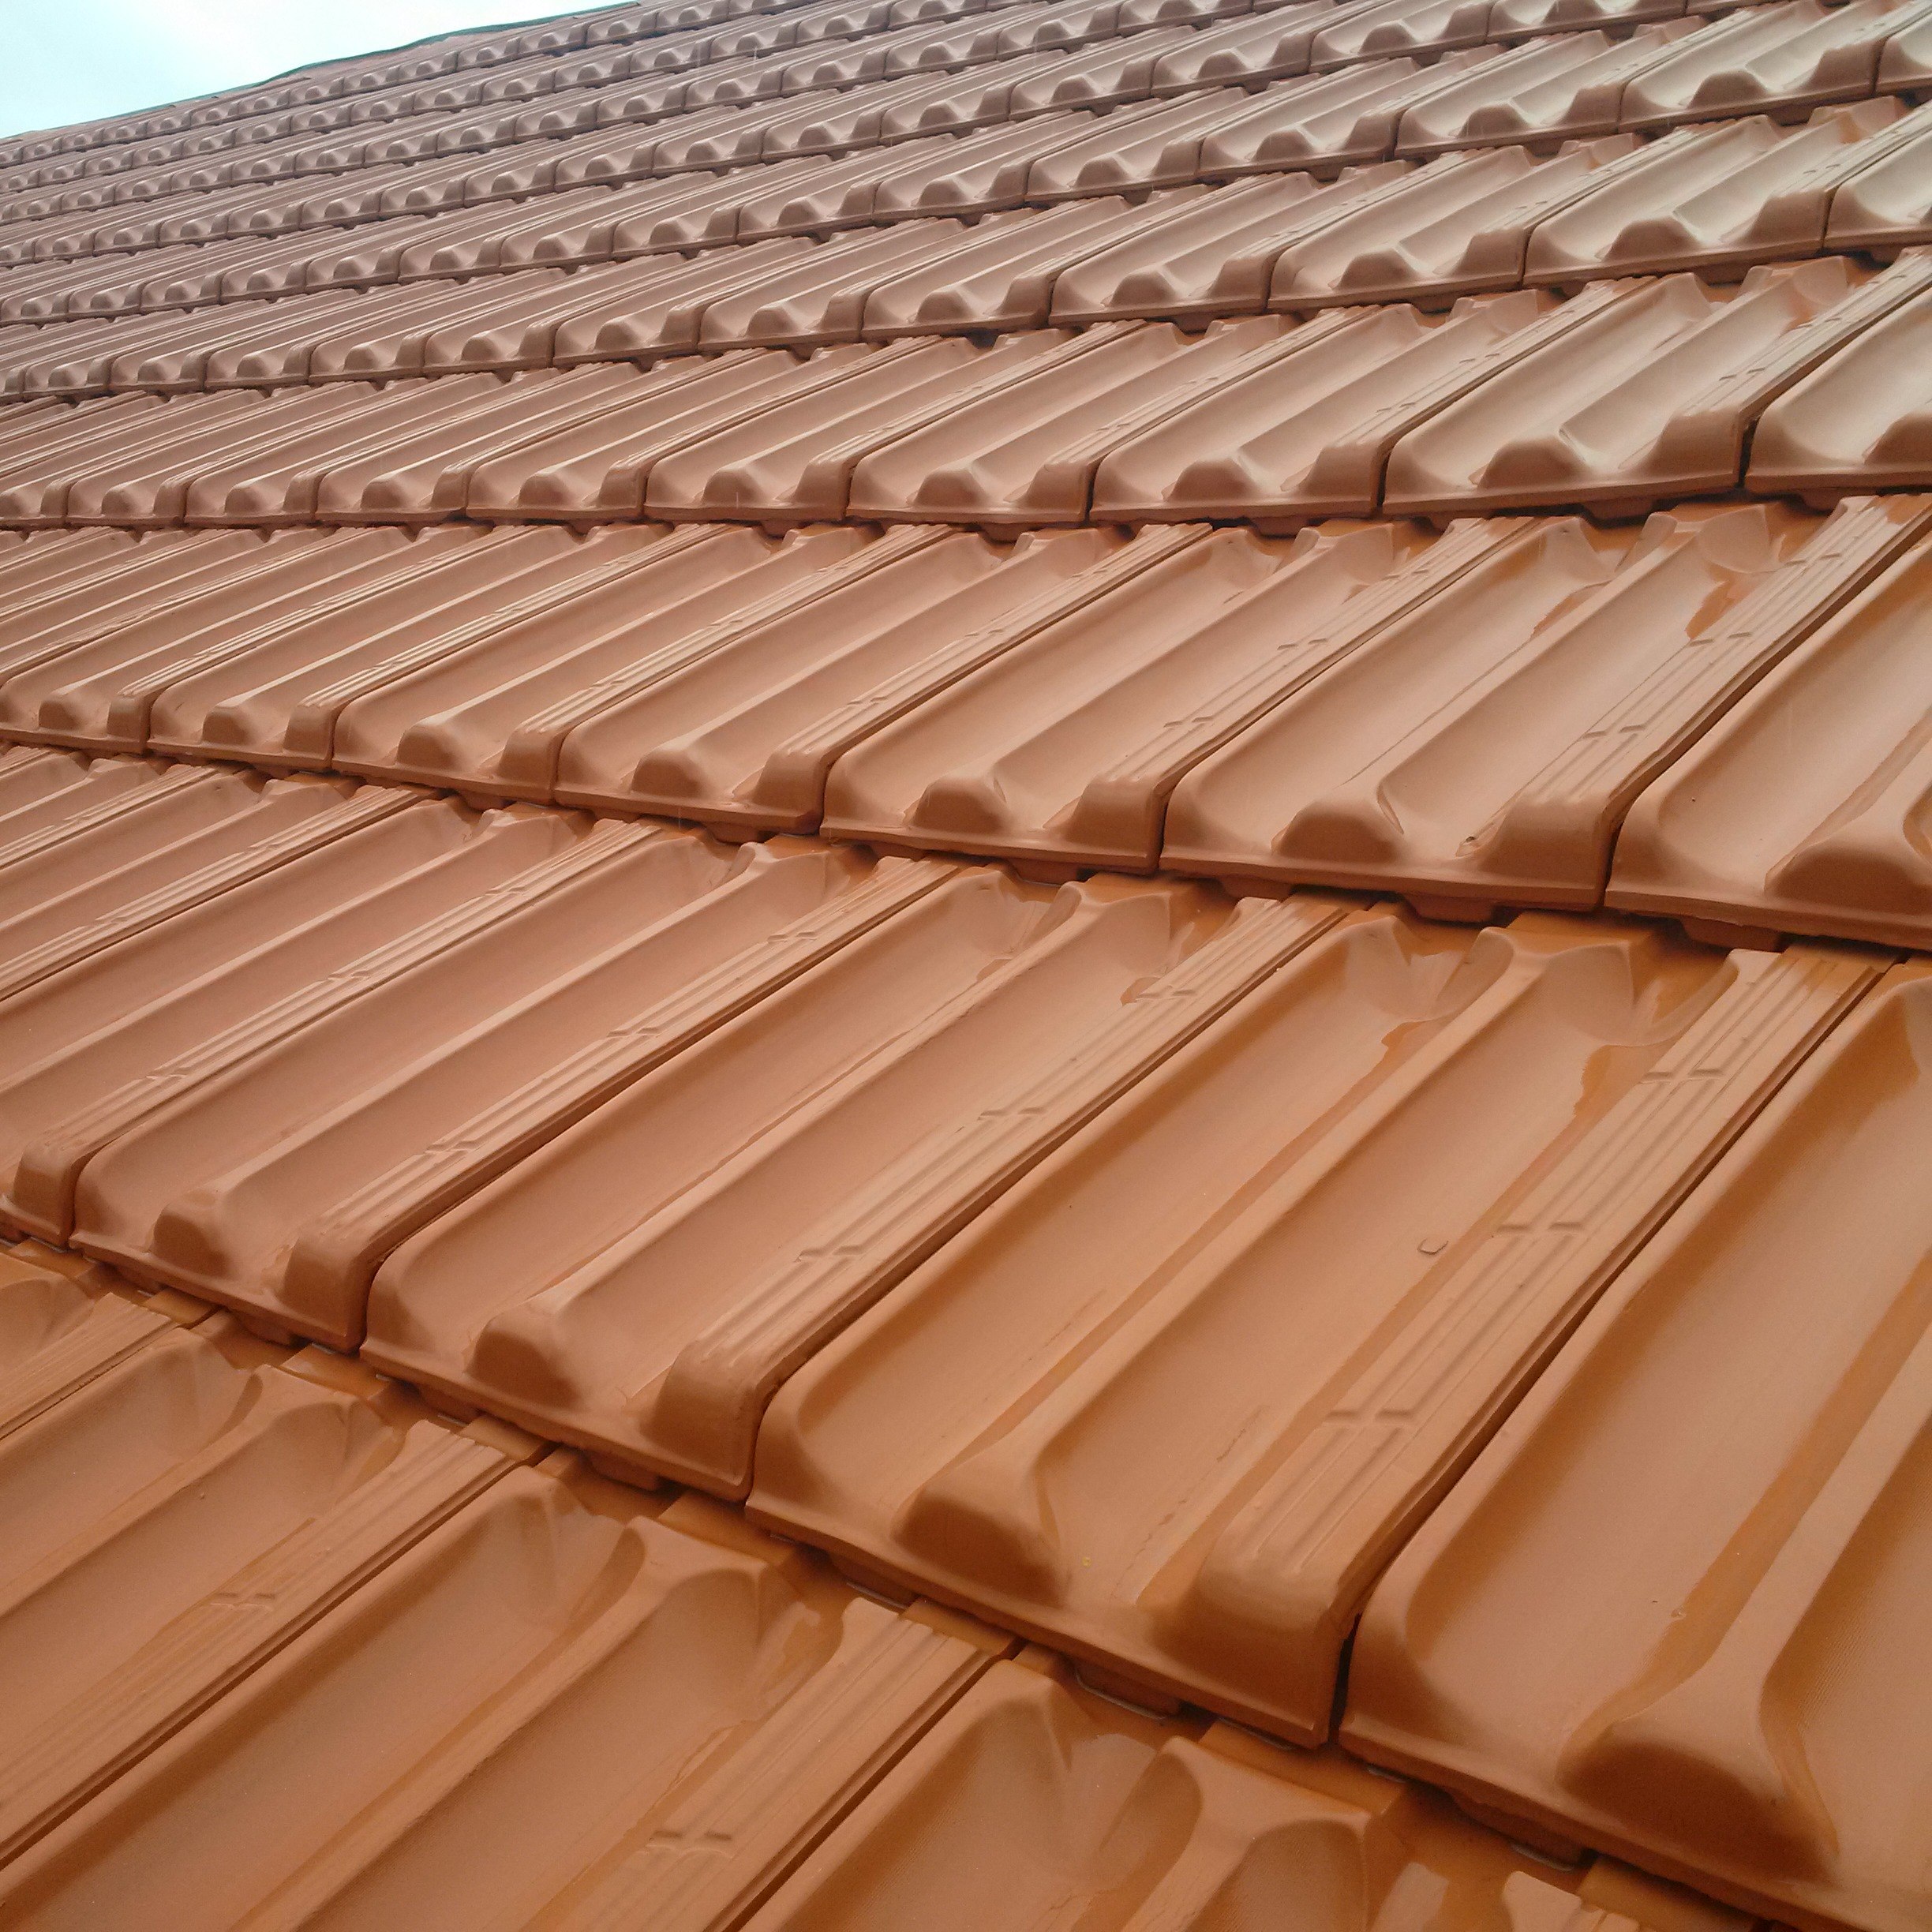 Flat Roof Tile - Stoneleaf Tiles